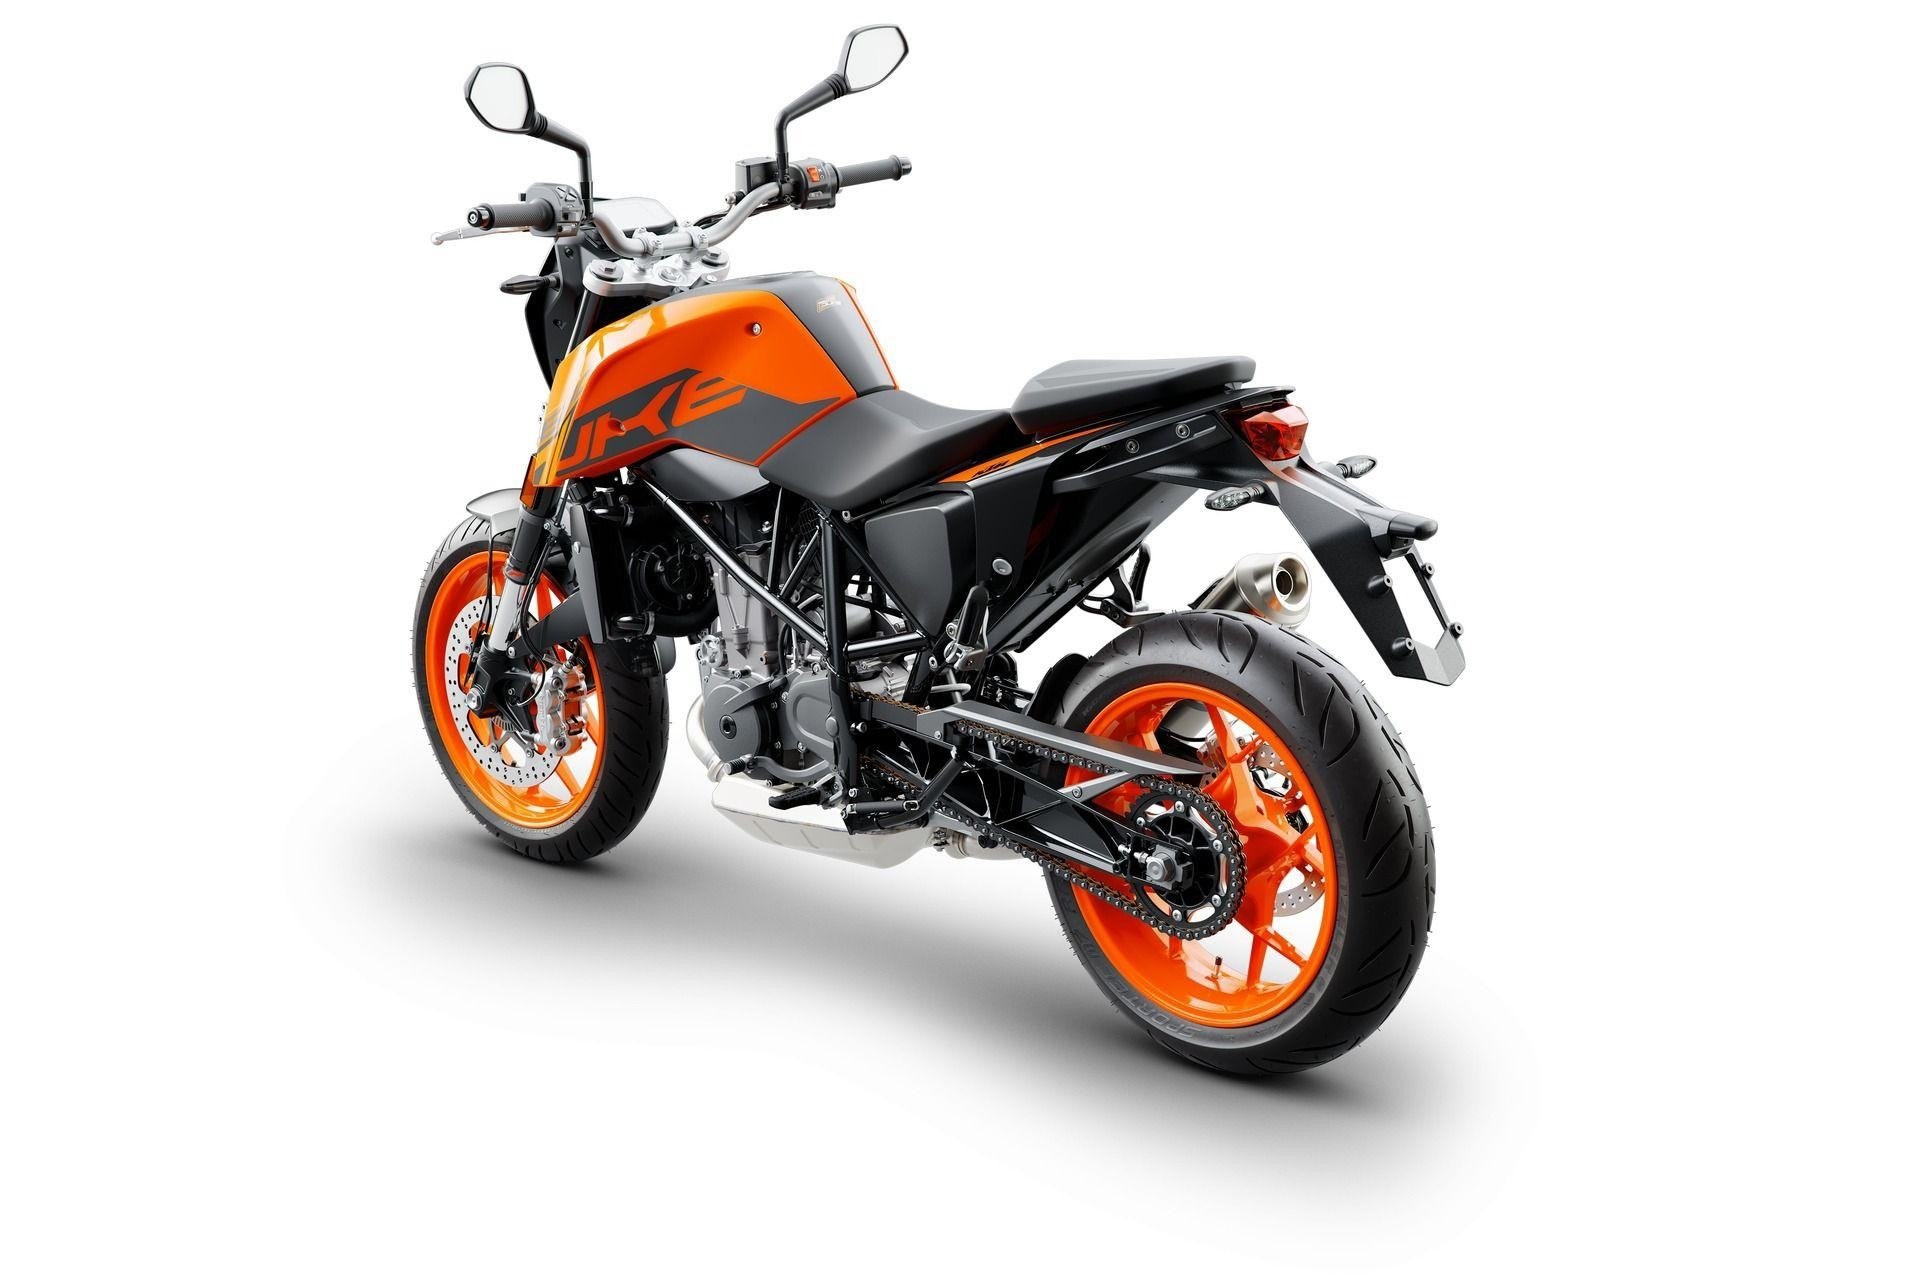 motorrad neufahrzeug kaufen ktm 690 duke abs st dler motos ag widnau. Black Bedroom Furniture Sets. Home Design Ideas